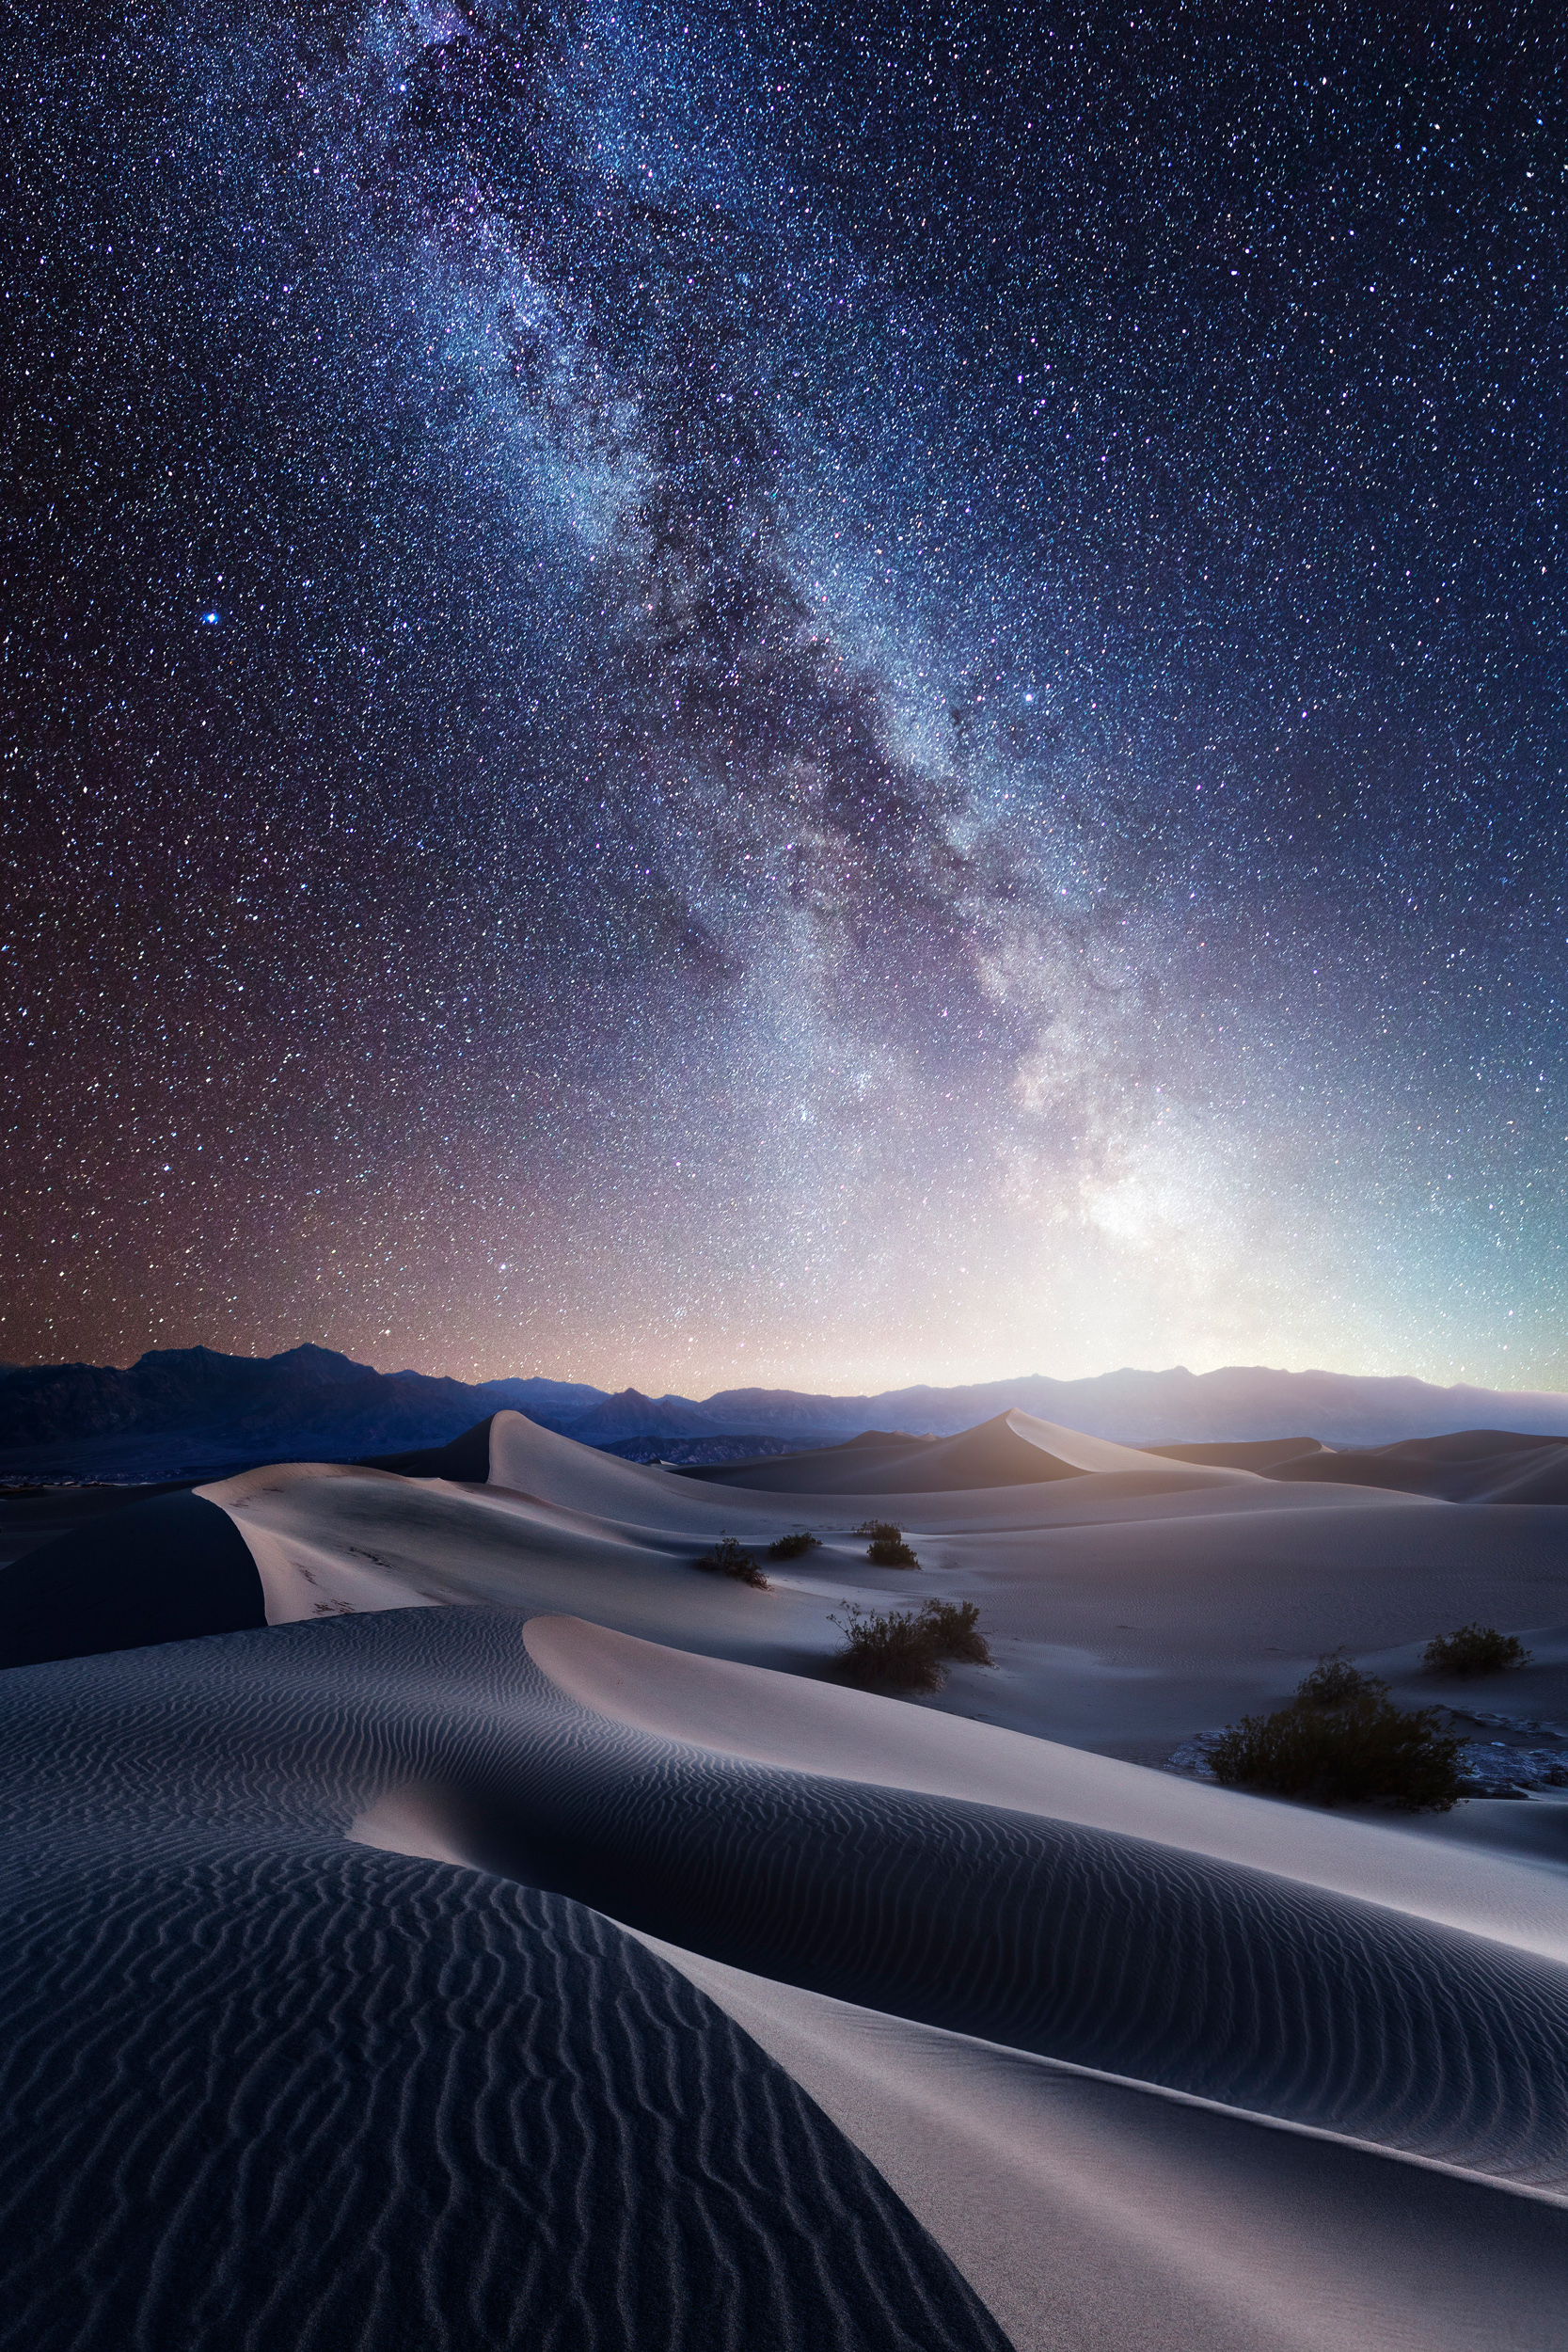 death valley mequite sand dunes milky way stars galaxy astrophotography composite dream long exposure night desert 2-3.jpg